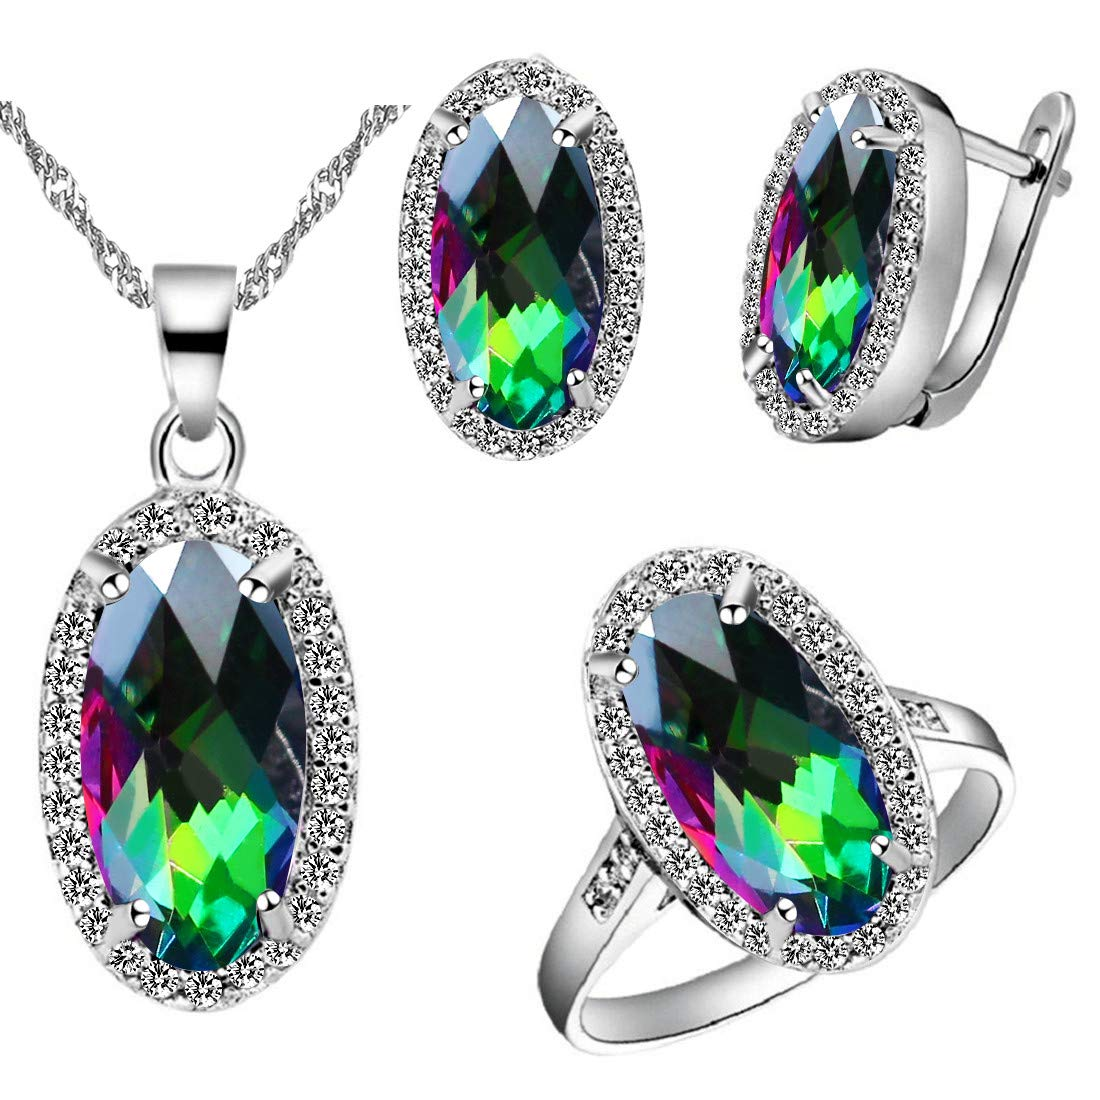 Uloveido Rainbow Multi Color Crystal White Gold Plated Jewelry Necklace Earrings and Ring Set for Women T482 T481-Multi-6